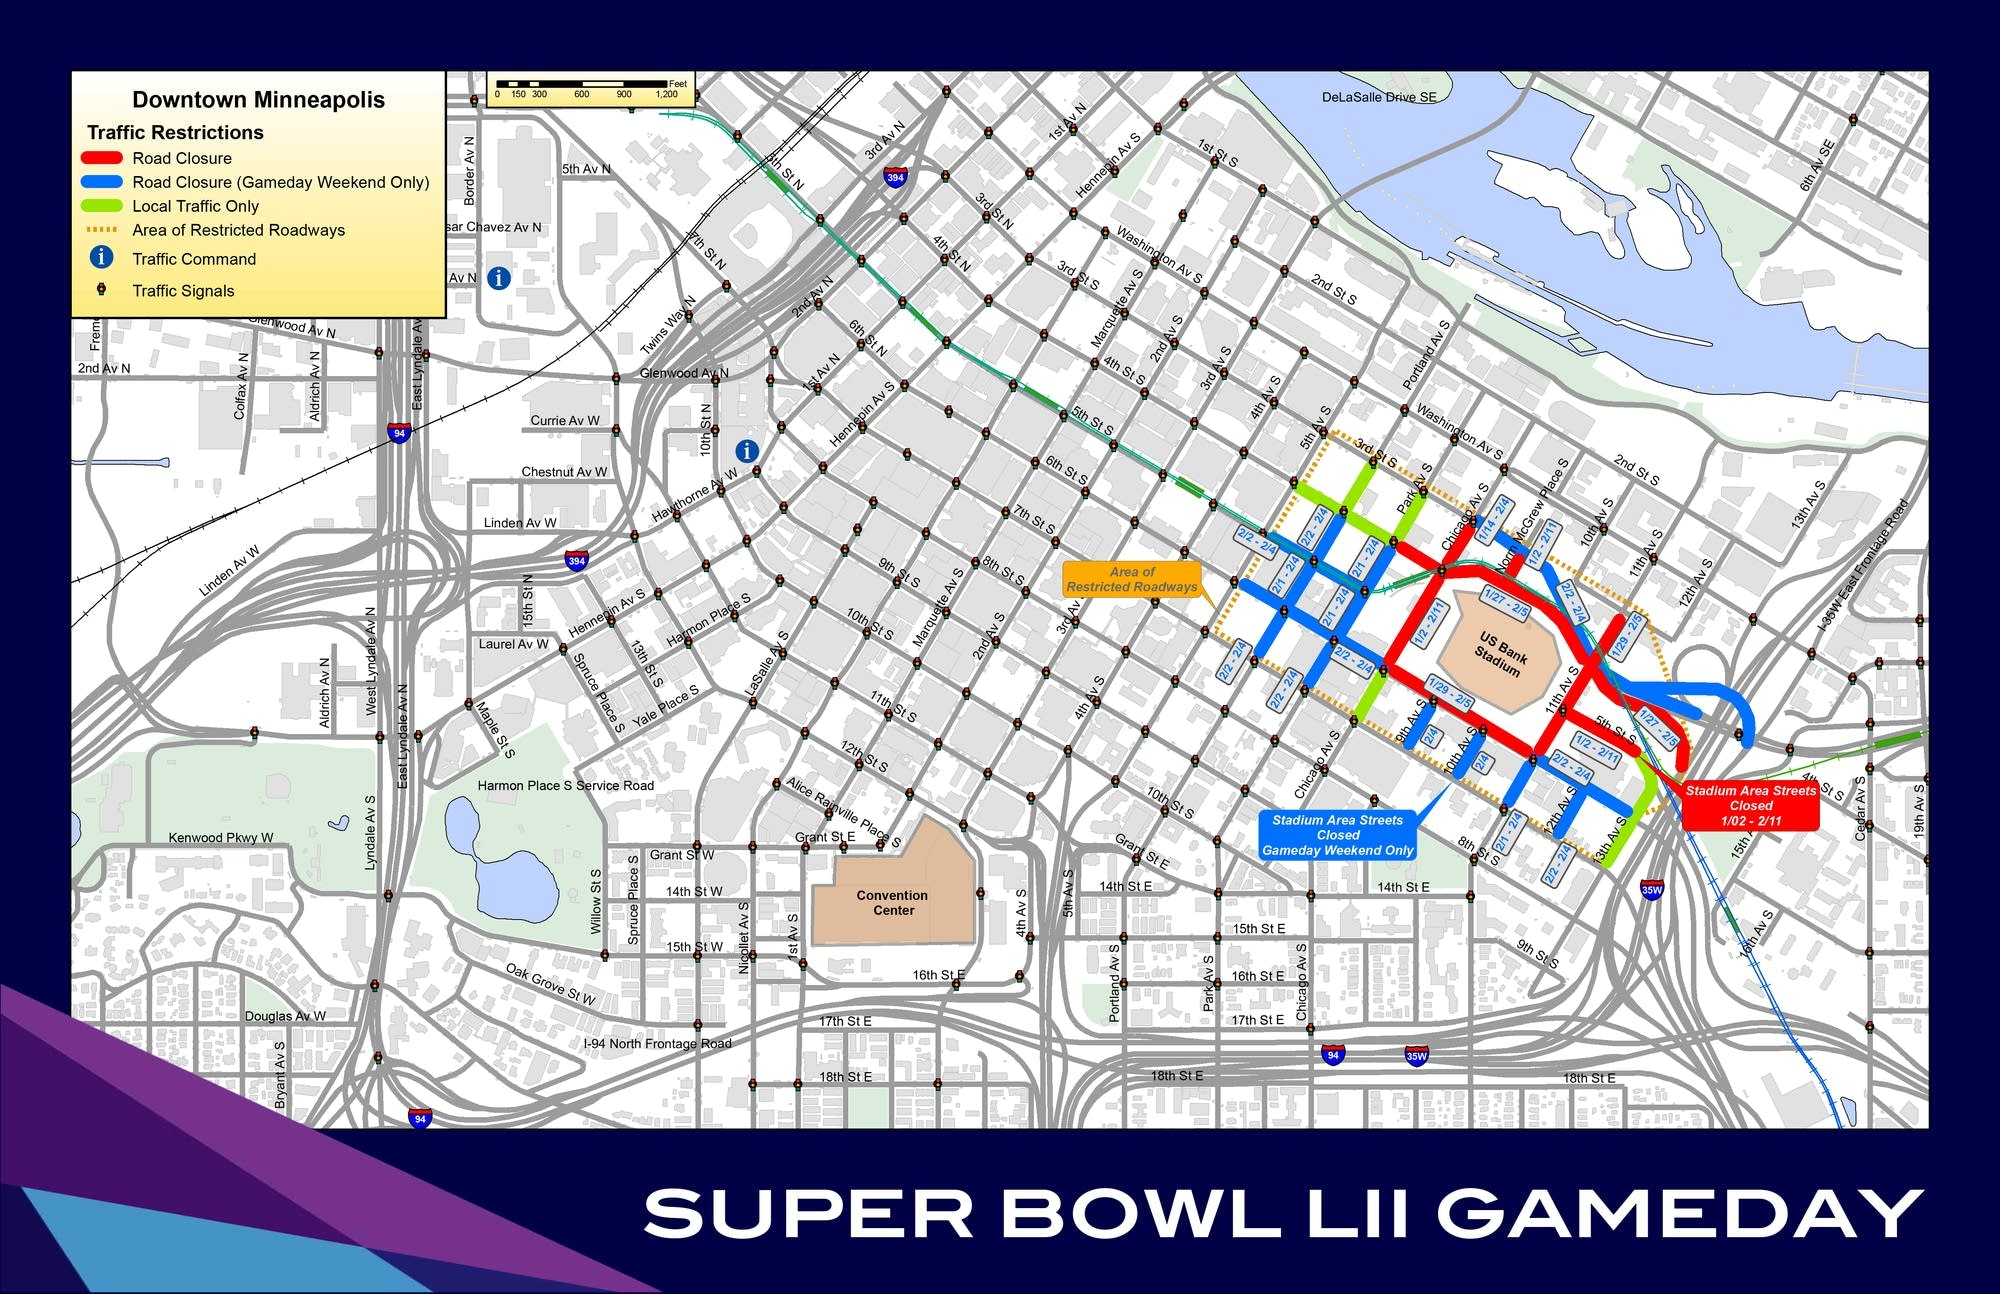 a map showing road closures and restrictions around us bank stadium